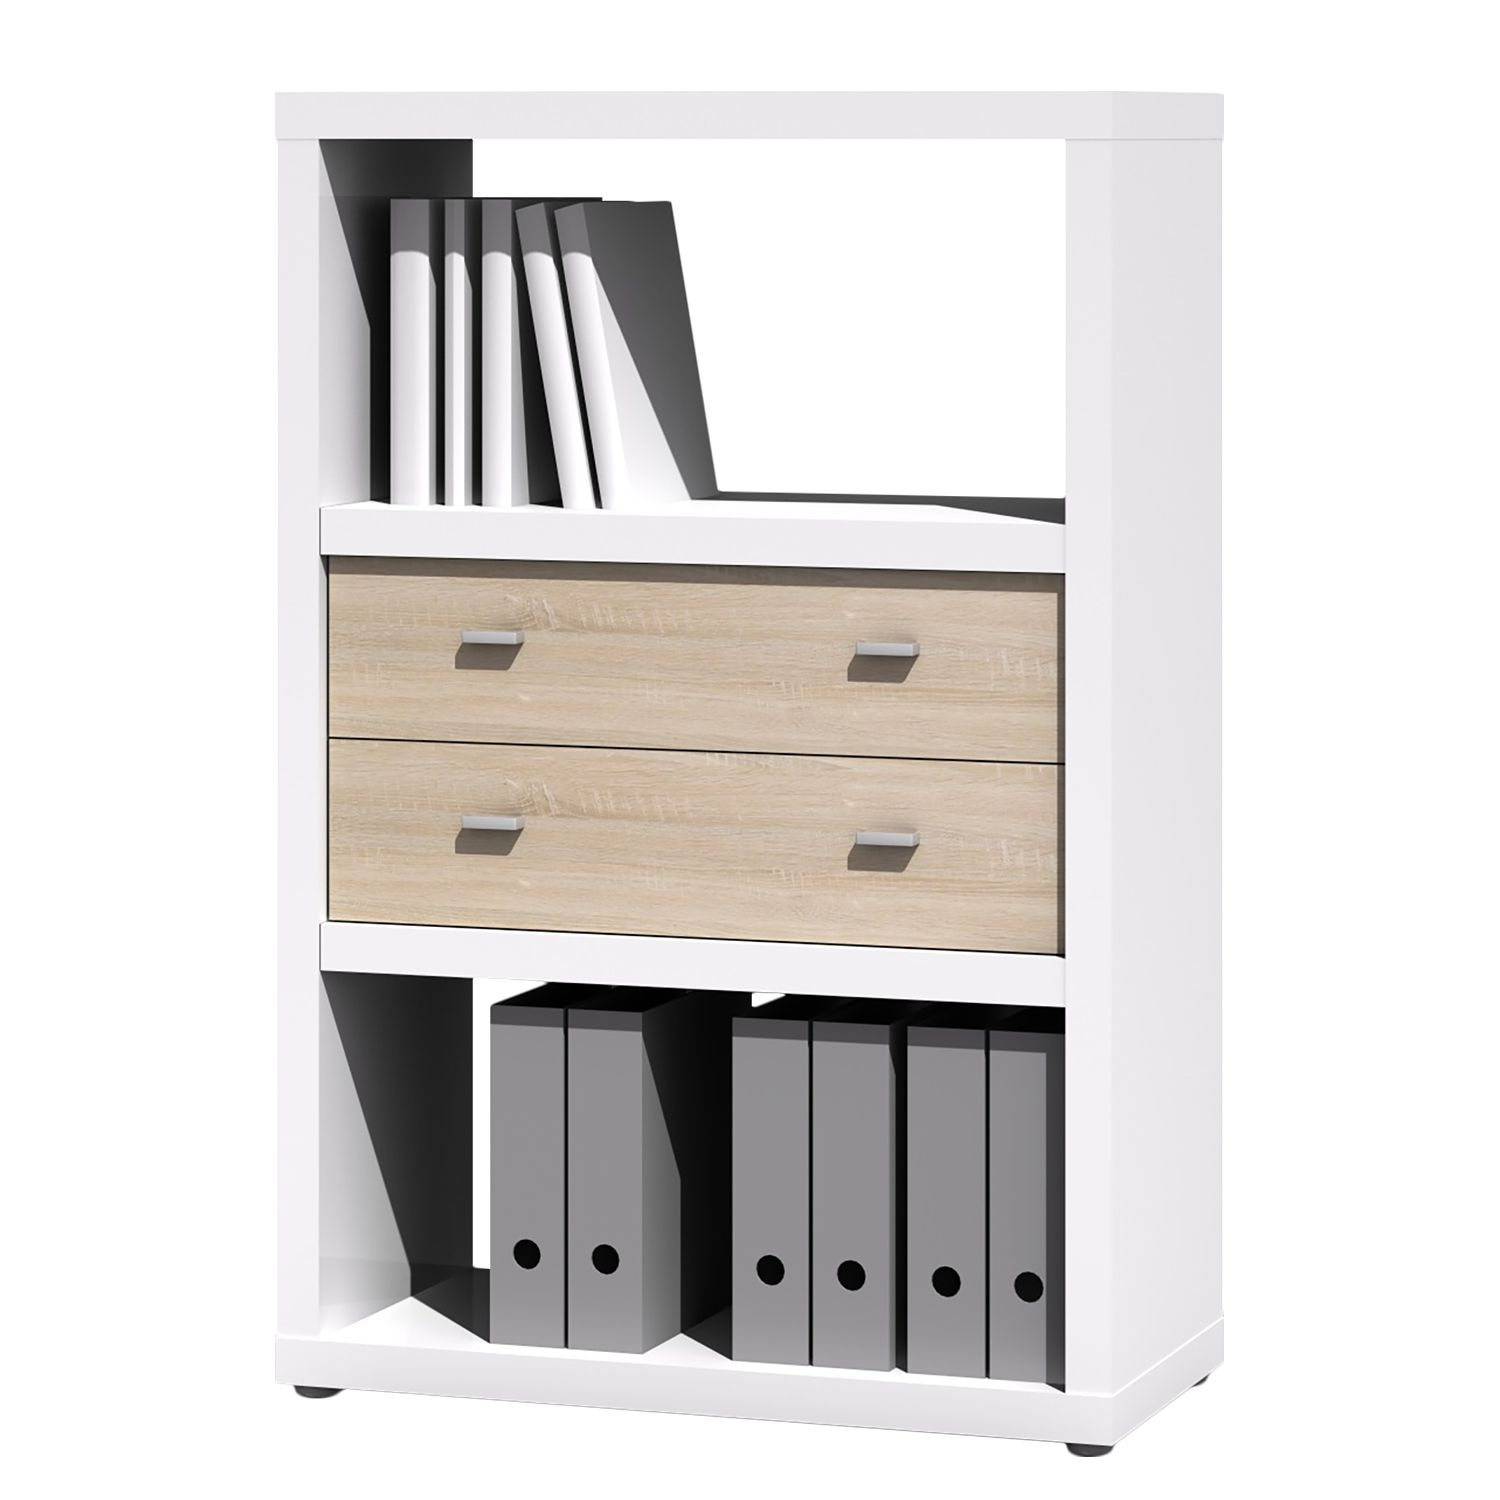 regal bestellen perfect zickzack regal weiss ikea regale ga nstige online bestellen poco. Black Bedroom Furniture Sets. Home Design Ideas